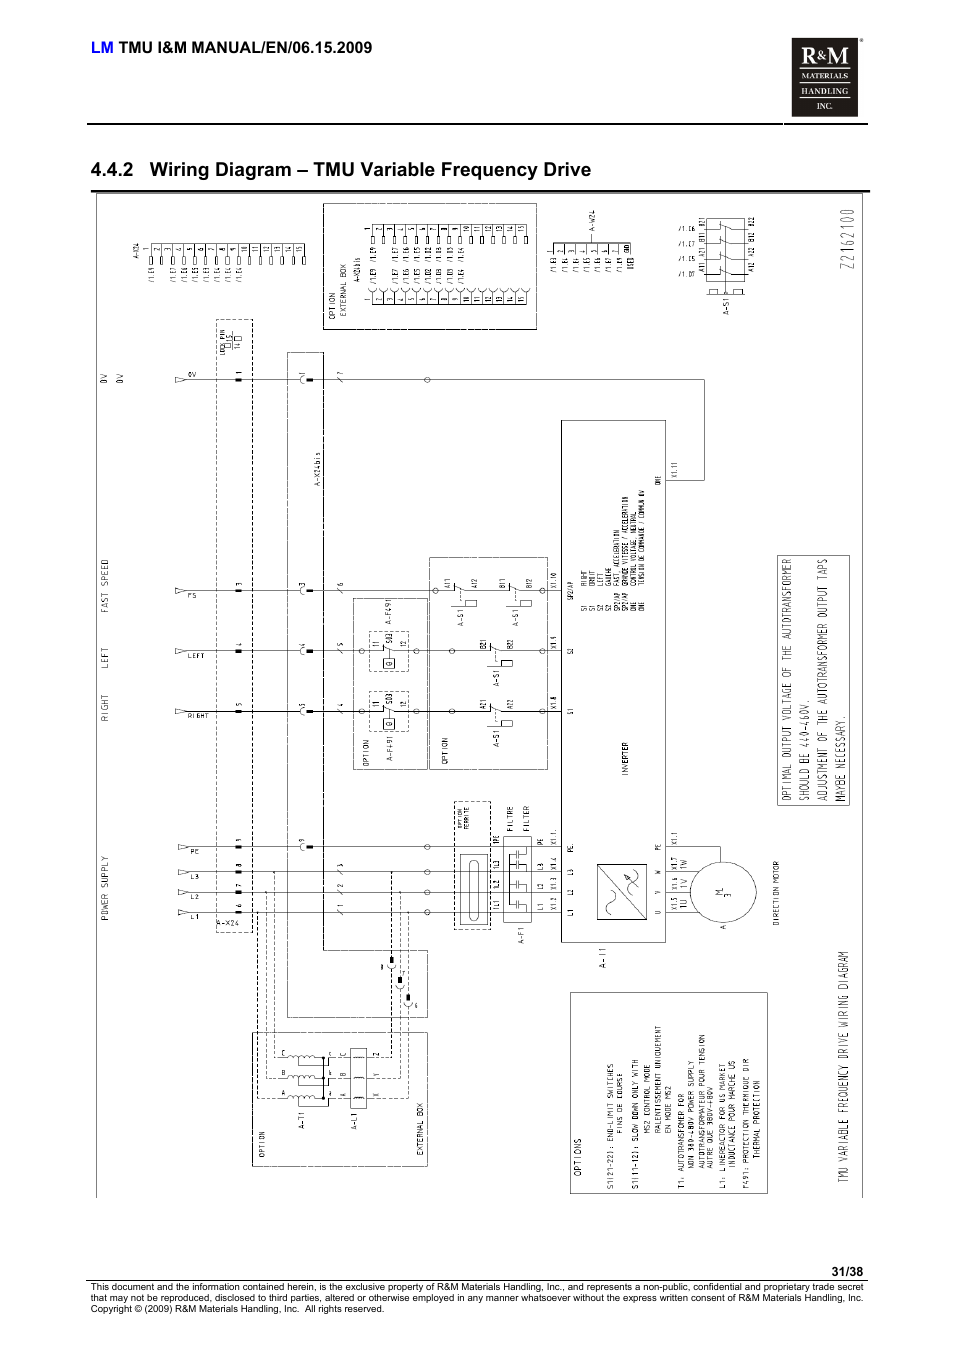 Wiring Diagram  U2013 Tmu Variable Frequency Drive  2 Wiring